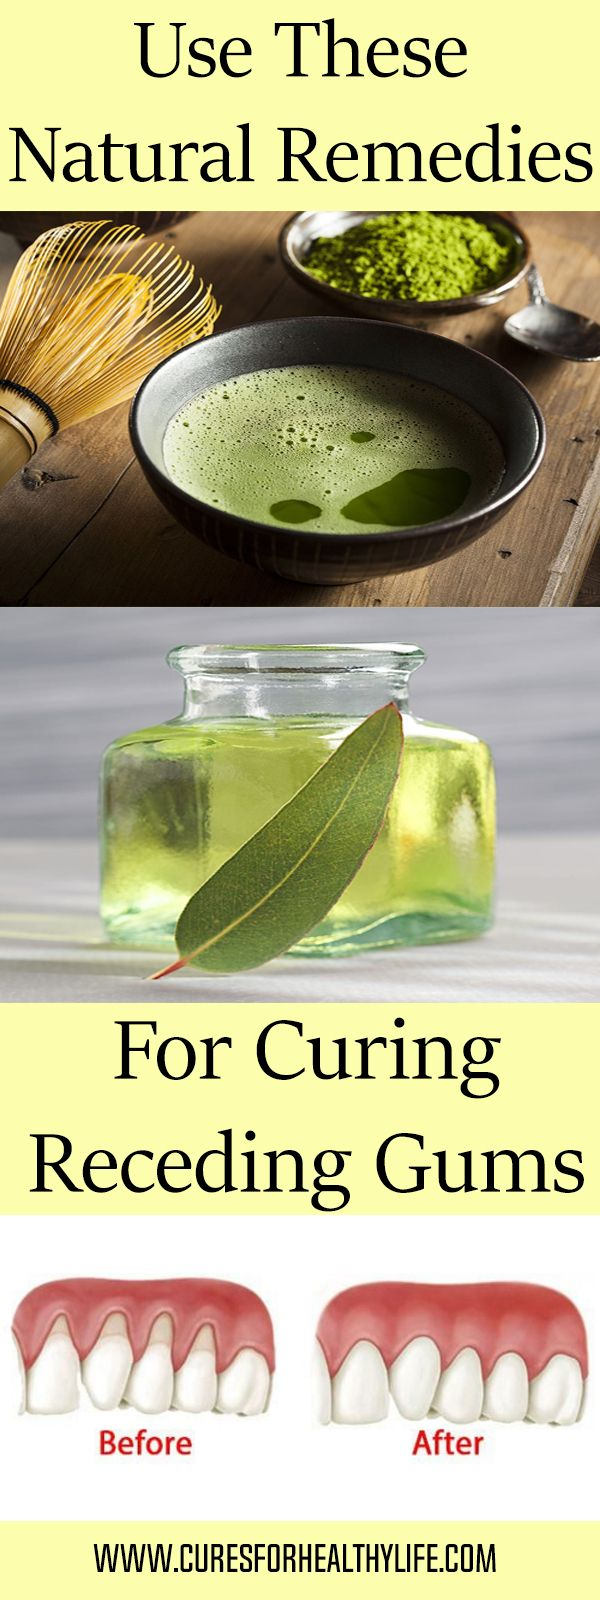 Use These 4 Natural Remedies For Curing Receding Gums